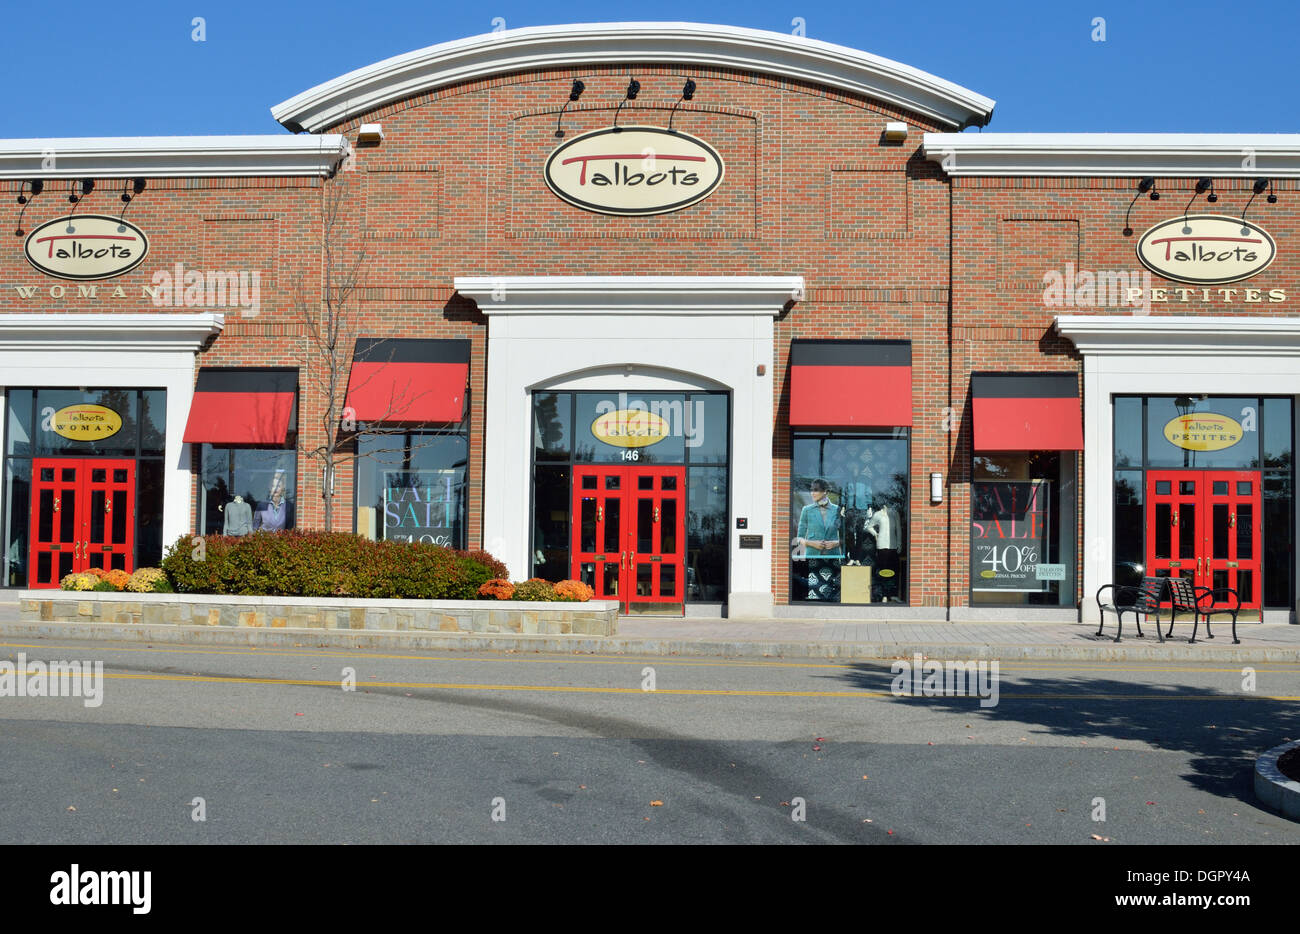 Comenity Bank issues Talbots Credit Card accounts. All promotional offers, including those related to Classic Awards and Talbots Credit Card, exclude Superga®, SPANX®, Sperry® and Blondo® products. Offer is subject to availability and Talbots reserves the right to change or withdraw the offer at any time without prior notice.